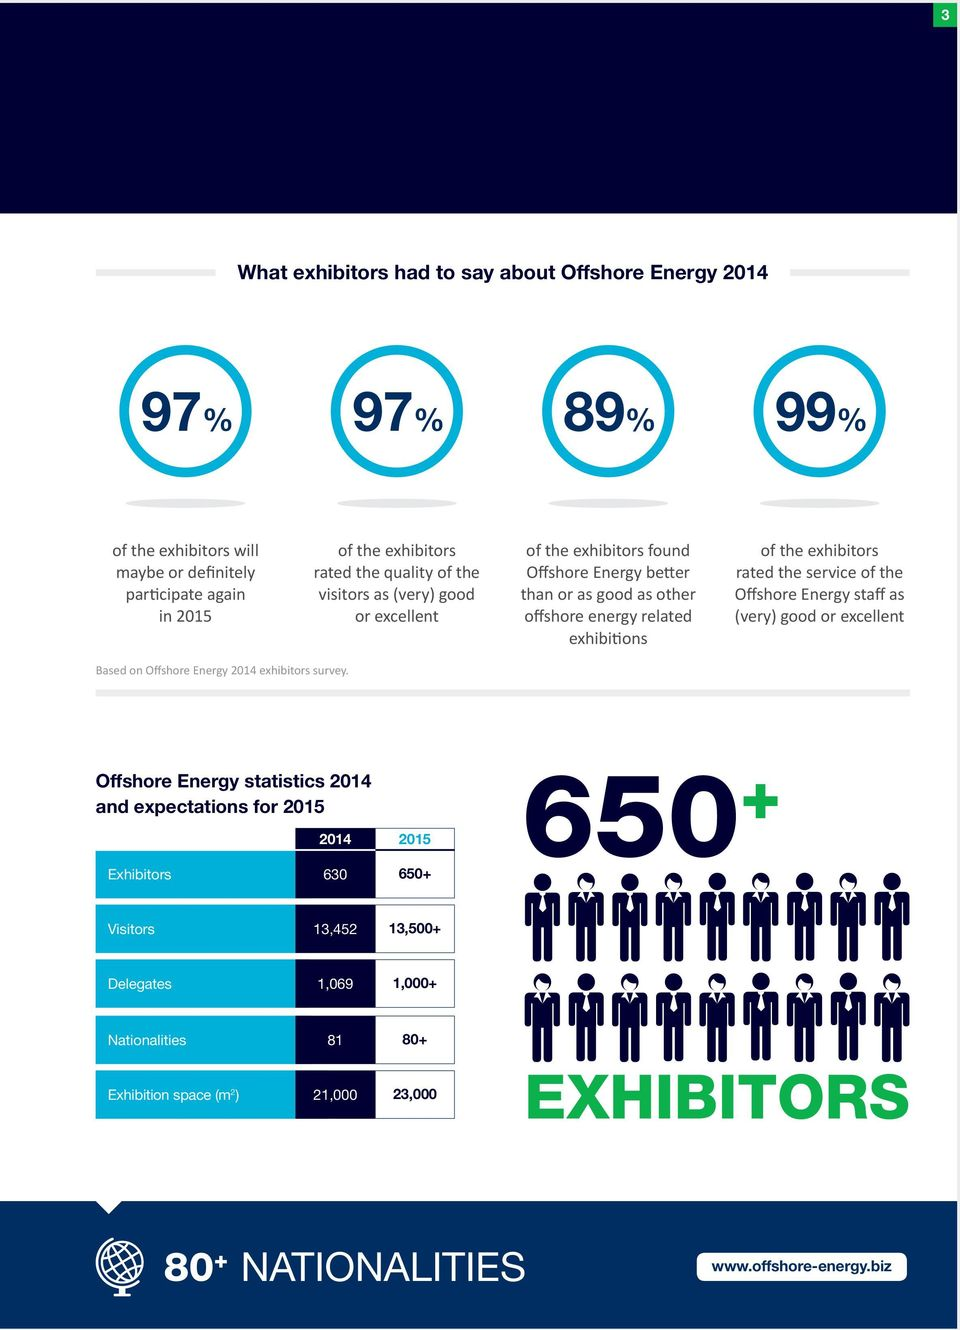 service of the Offshore Energy staff as (very) good or excellent Based on Offshore Energy 2014 exhibitors survey.